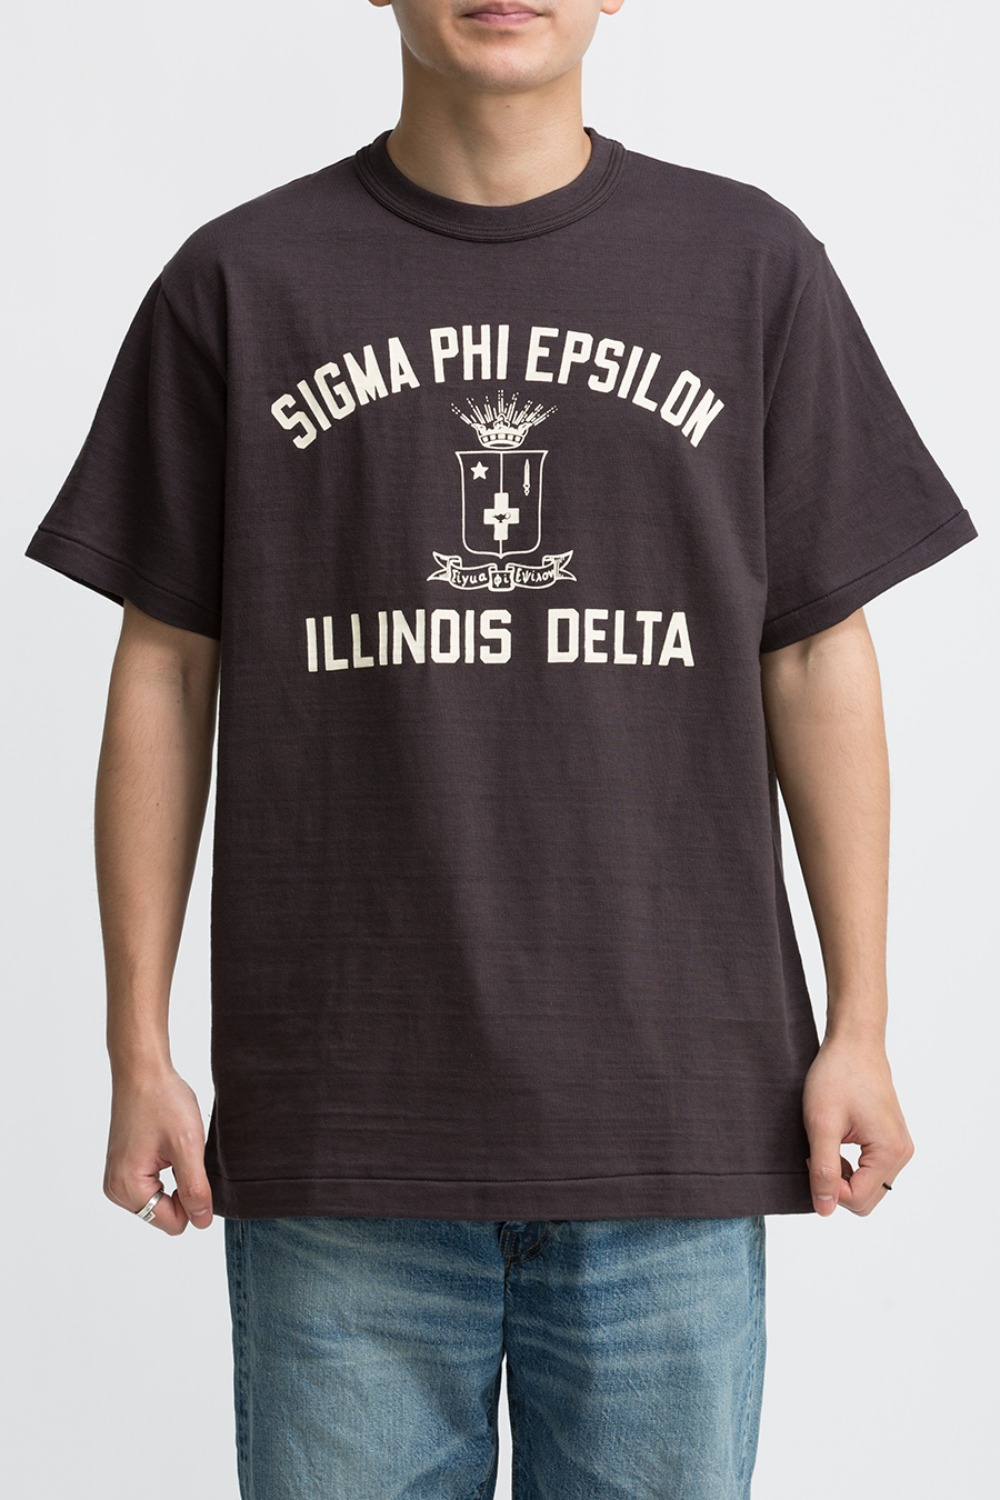 LOT 4601 SIGMA PHI EPSILON BLACK